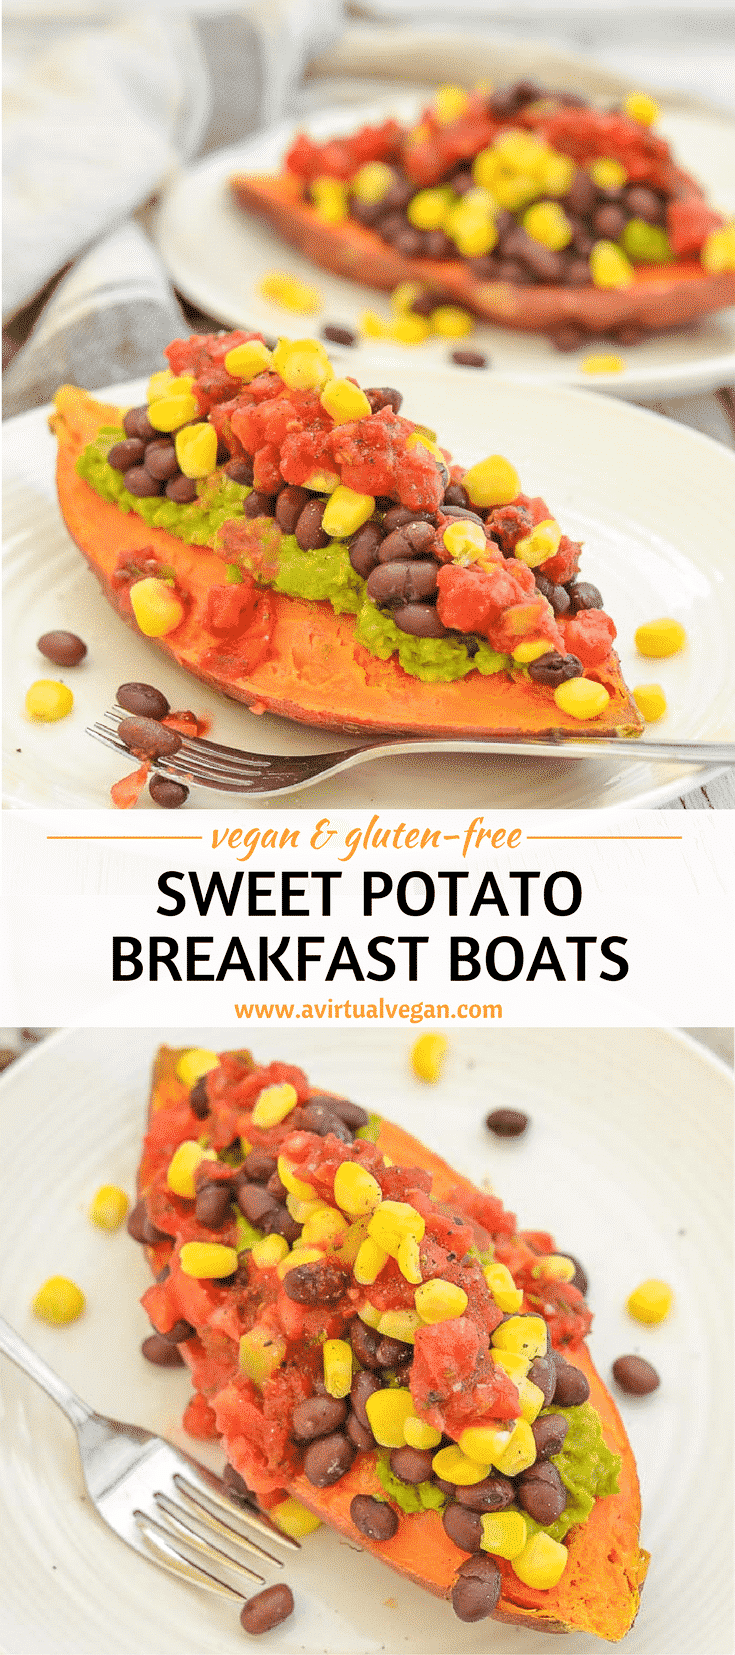 Breakfast just got reinvented with these sweet, comforting & super nutritious Sweet Potato Breakfast Boats. They are crazy yummy & surprisingly quick to prepare! They are also oil-free and gluten-free.